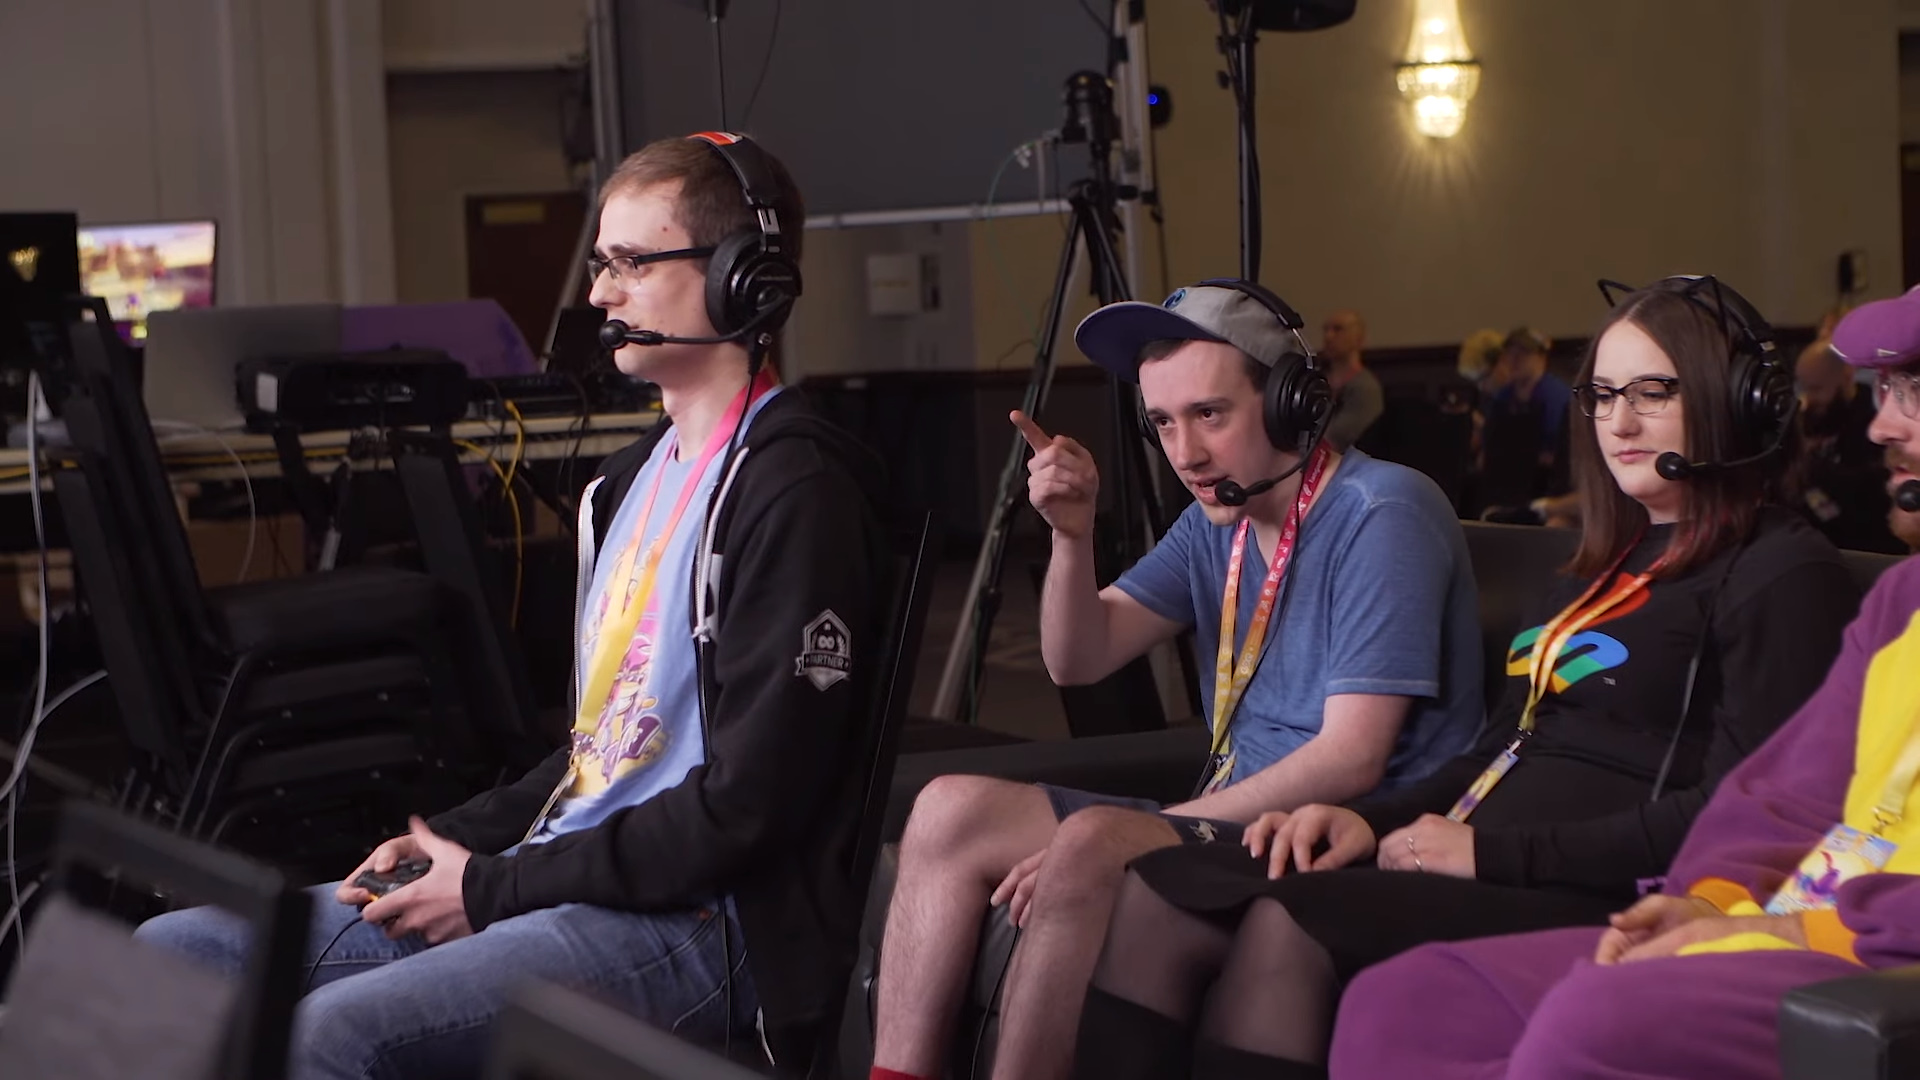 SGDQ 2019 raised $3 million for Doctors Without Borders, setting a new record